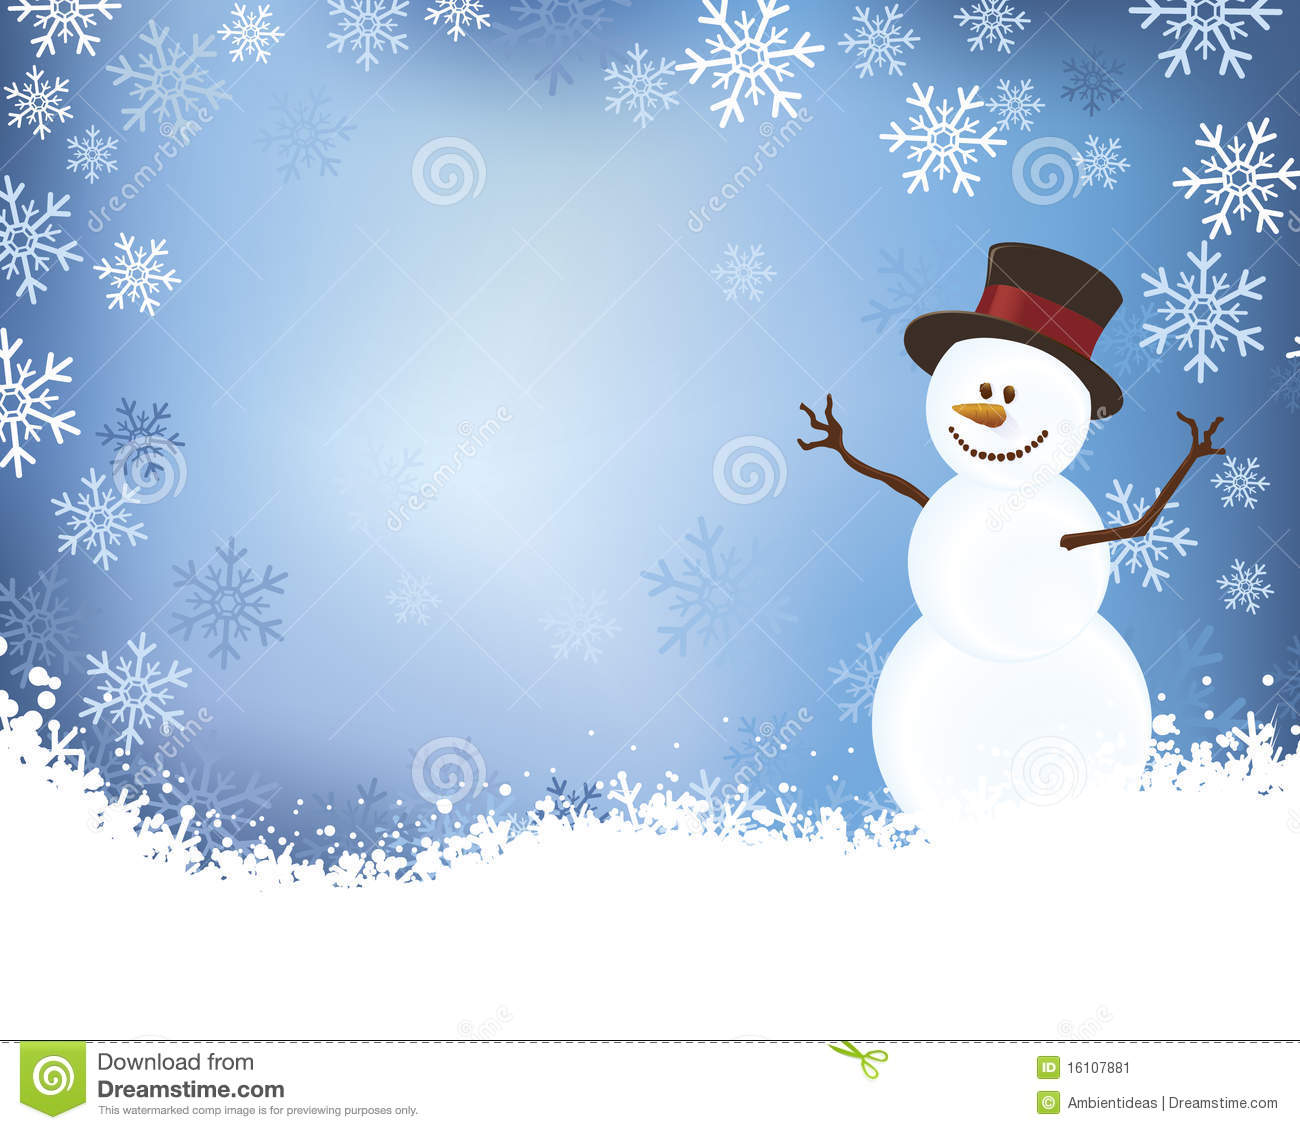 blue gradient background and detailed shadowed snowman with top hat